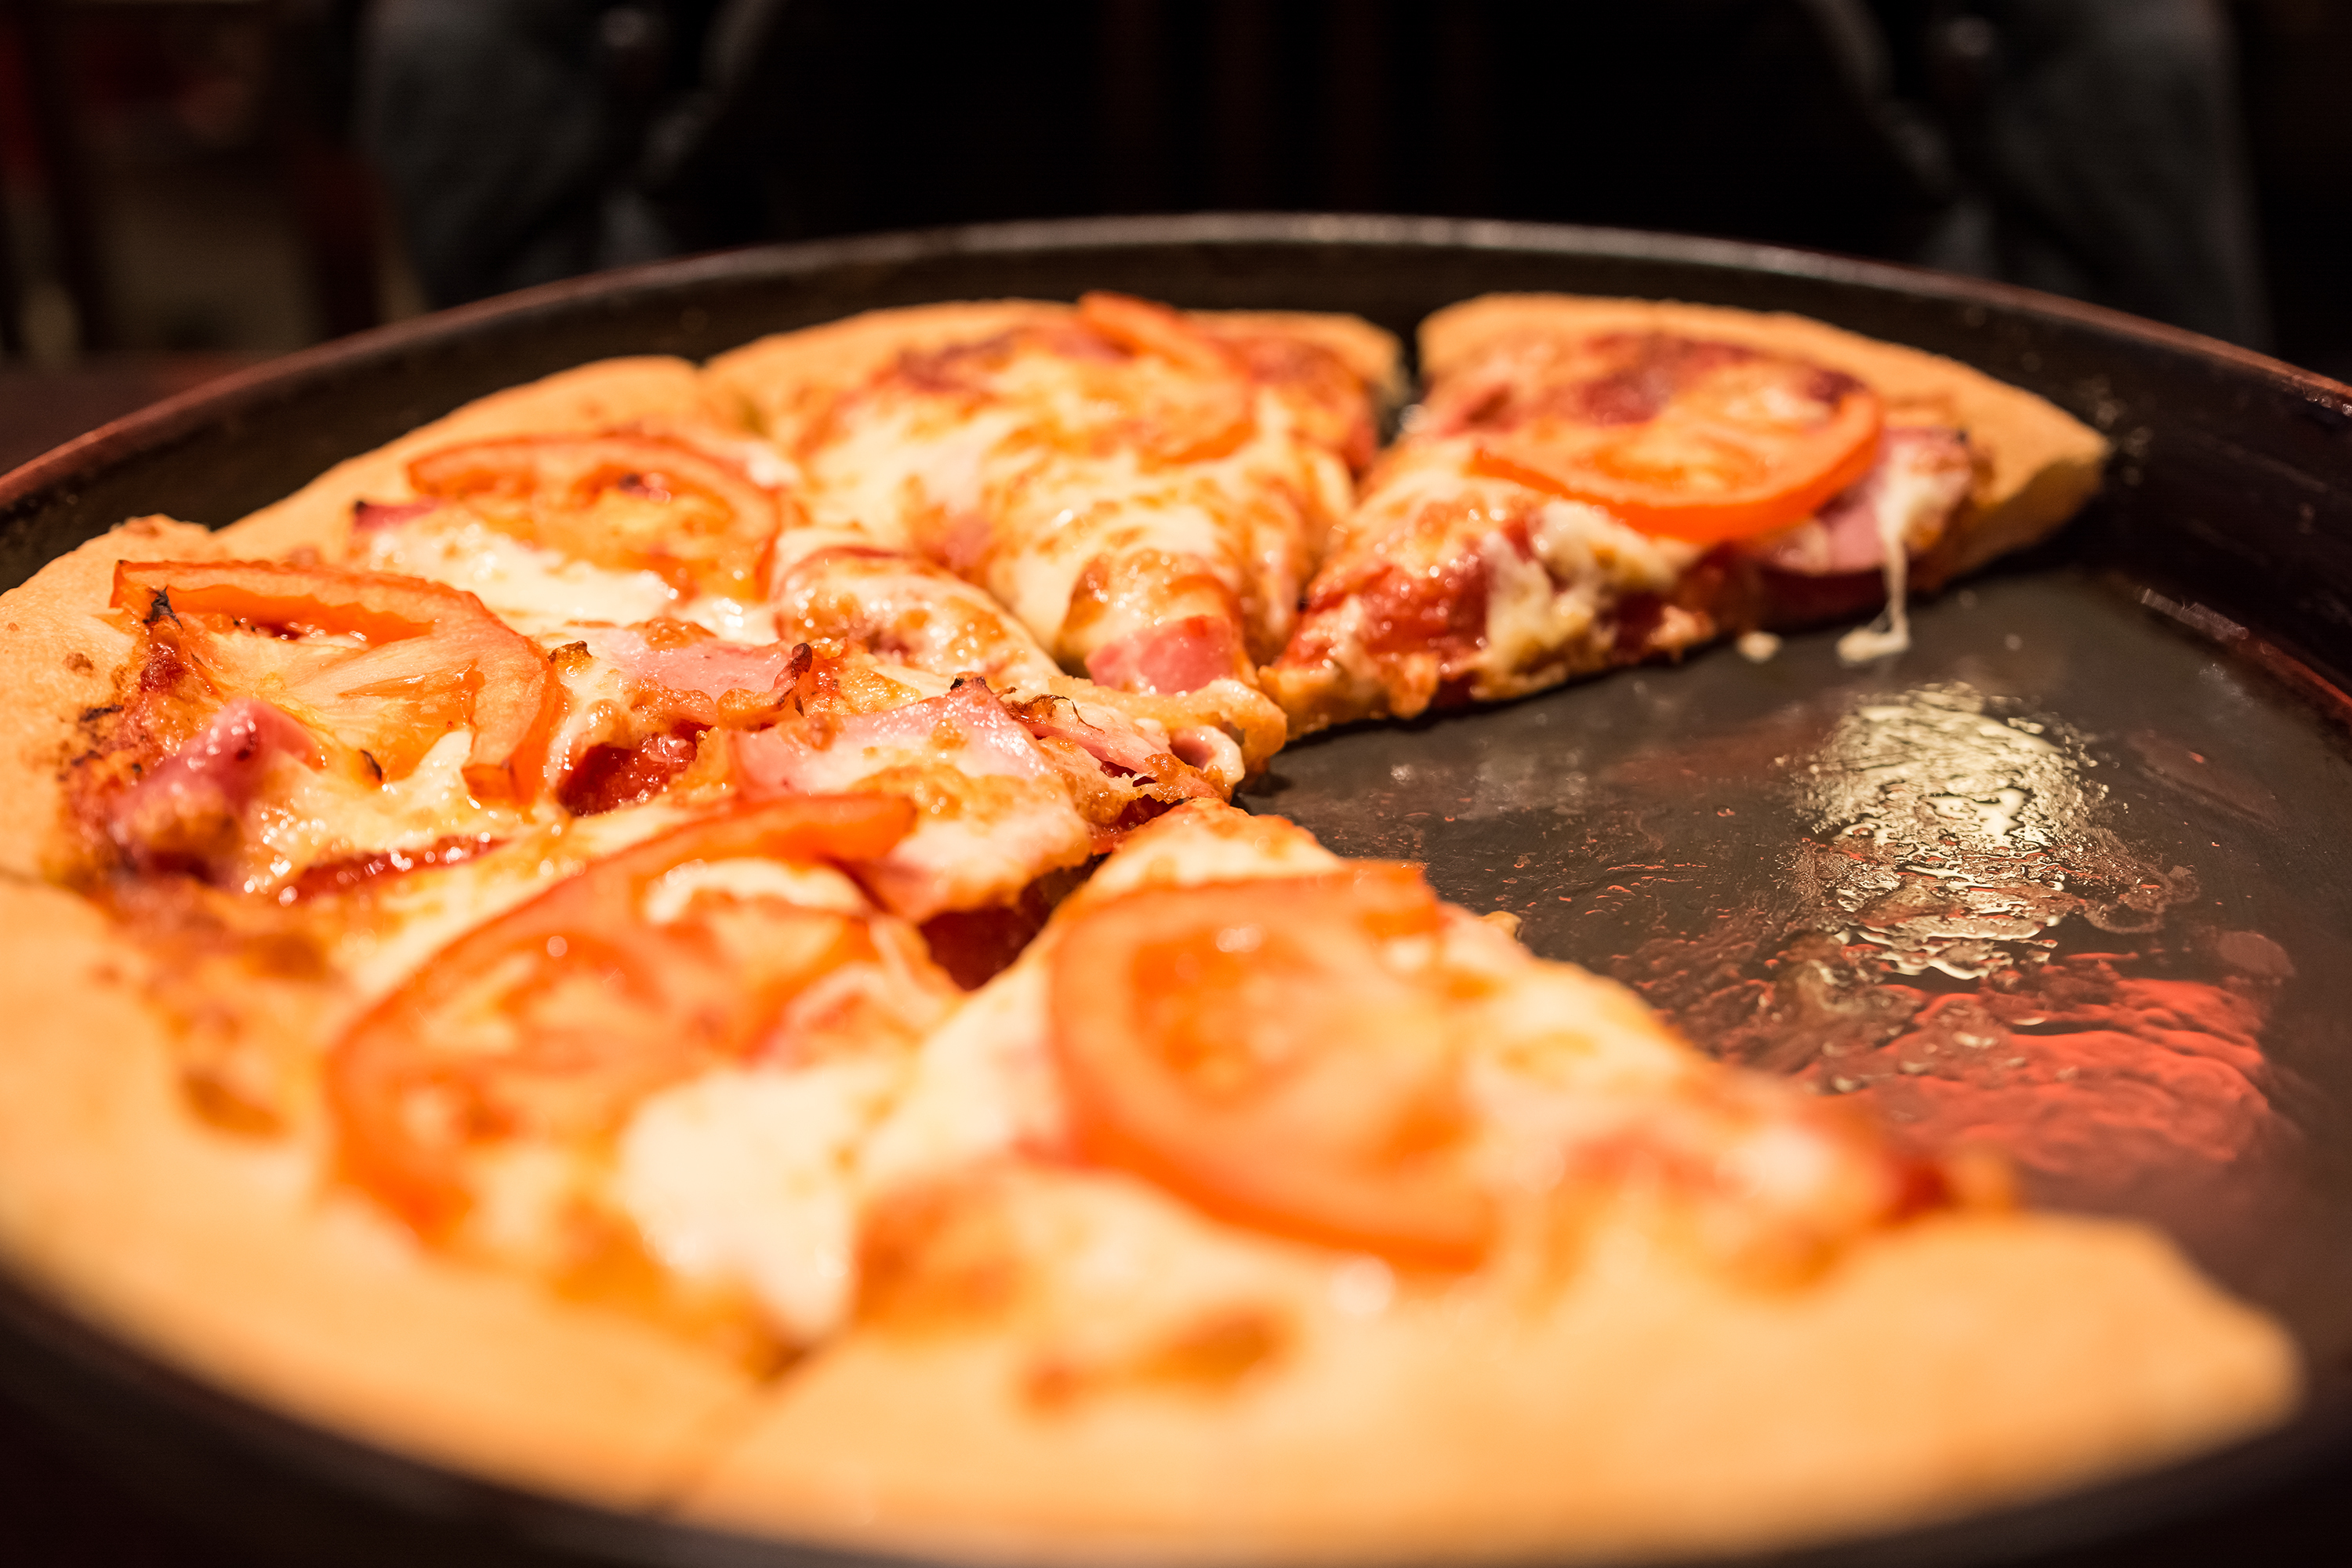 Pizza Hut is giving out 500,000 free pizzas to high school graduates